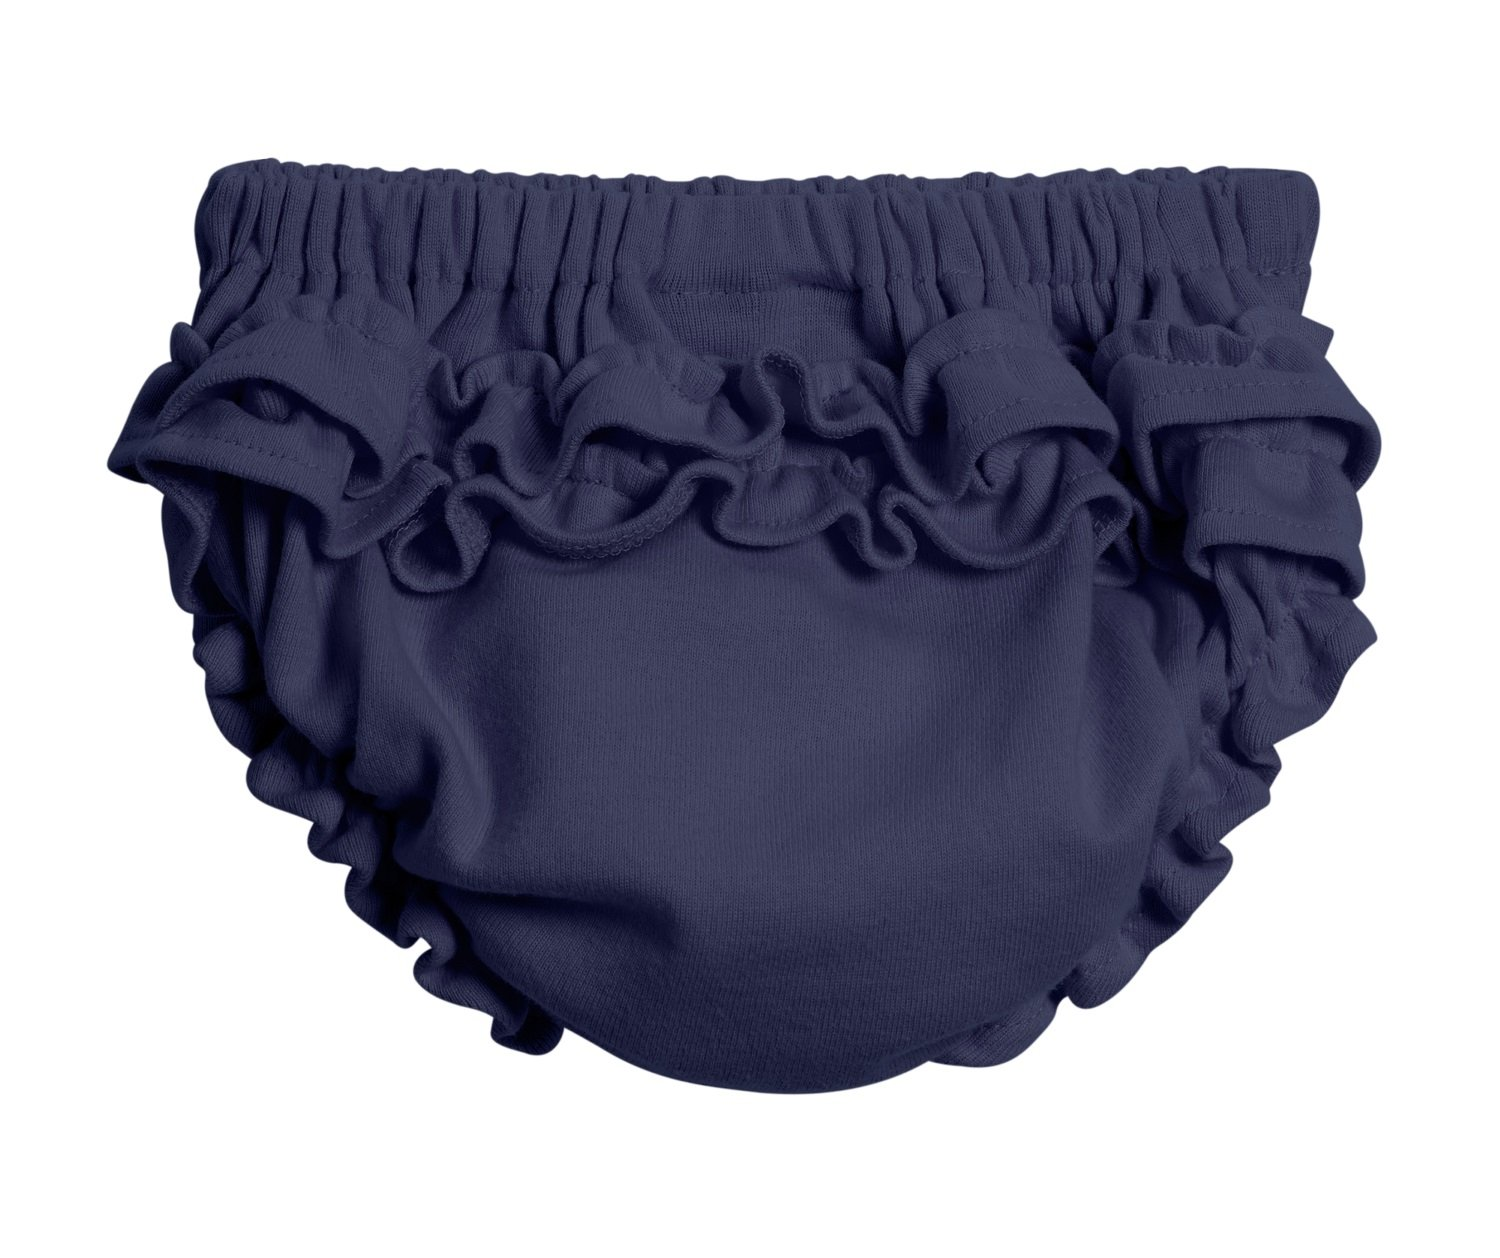 City Threads Baby Girls' 100% Soft Cotton Ruffle Diaper Cover Bloomers Made USA CT-DIAPCRRUF-P1